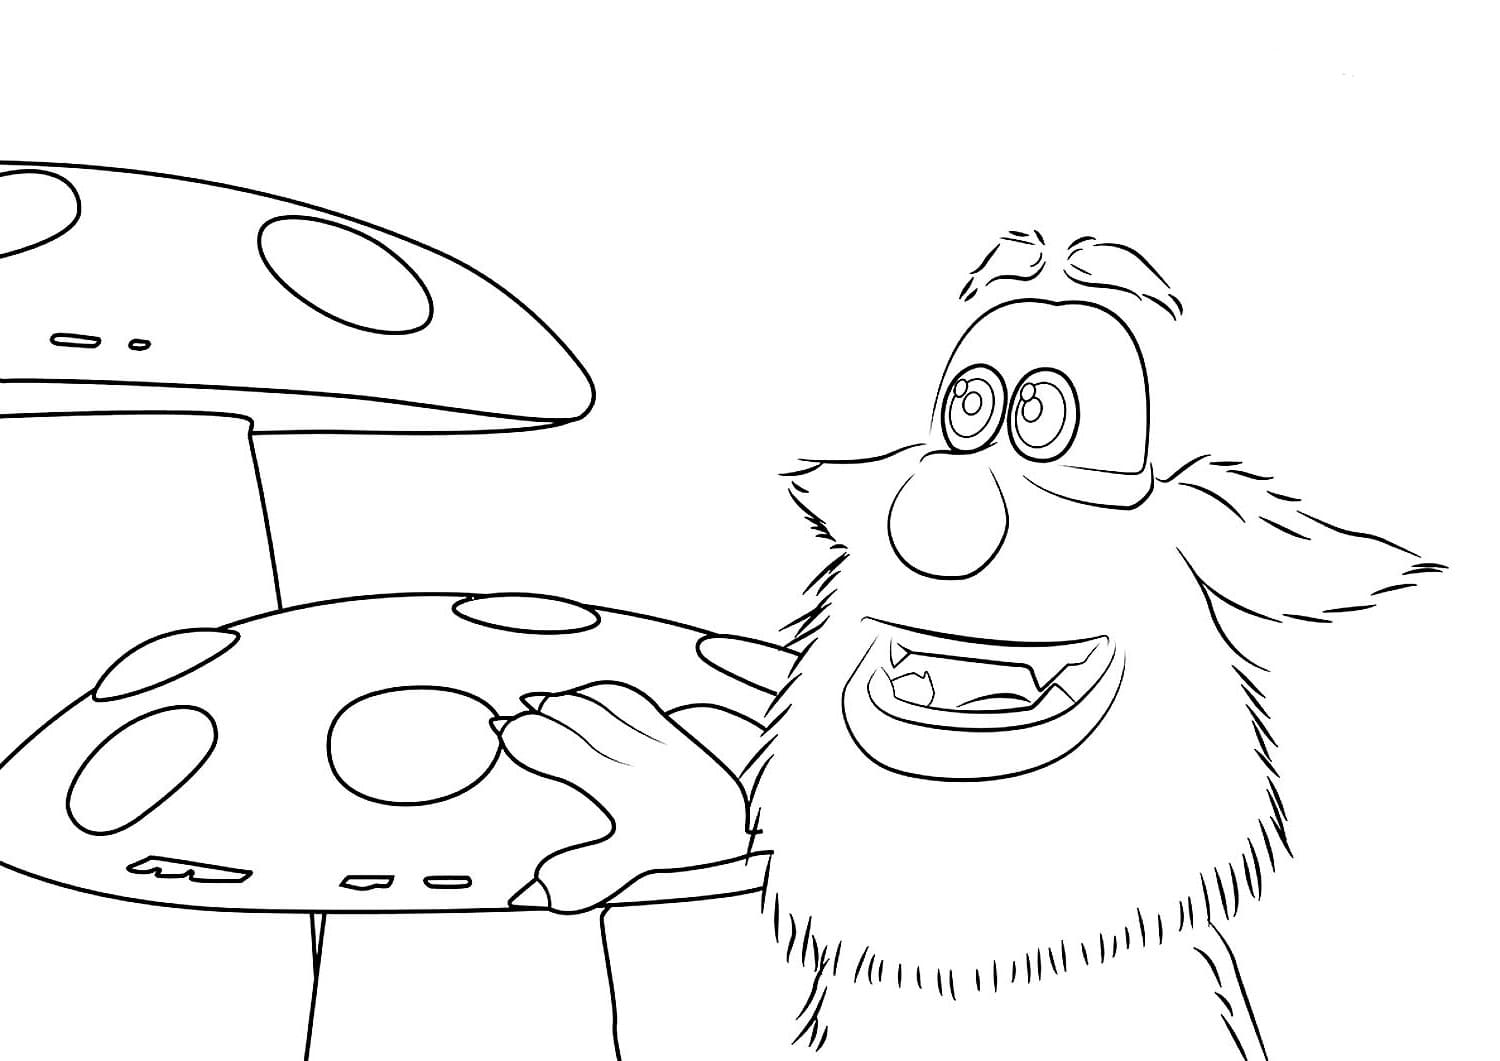 Booba In Mushrooms Coloring Page